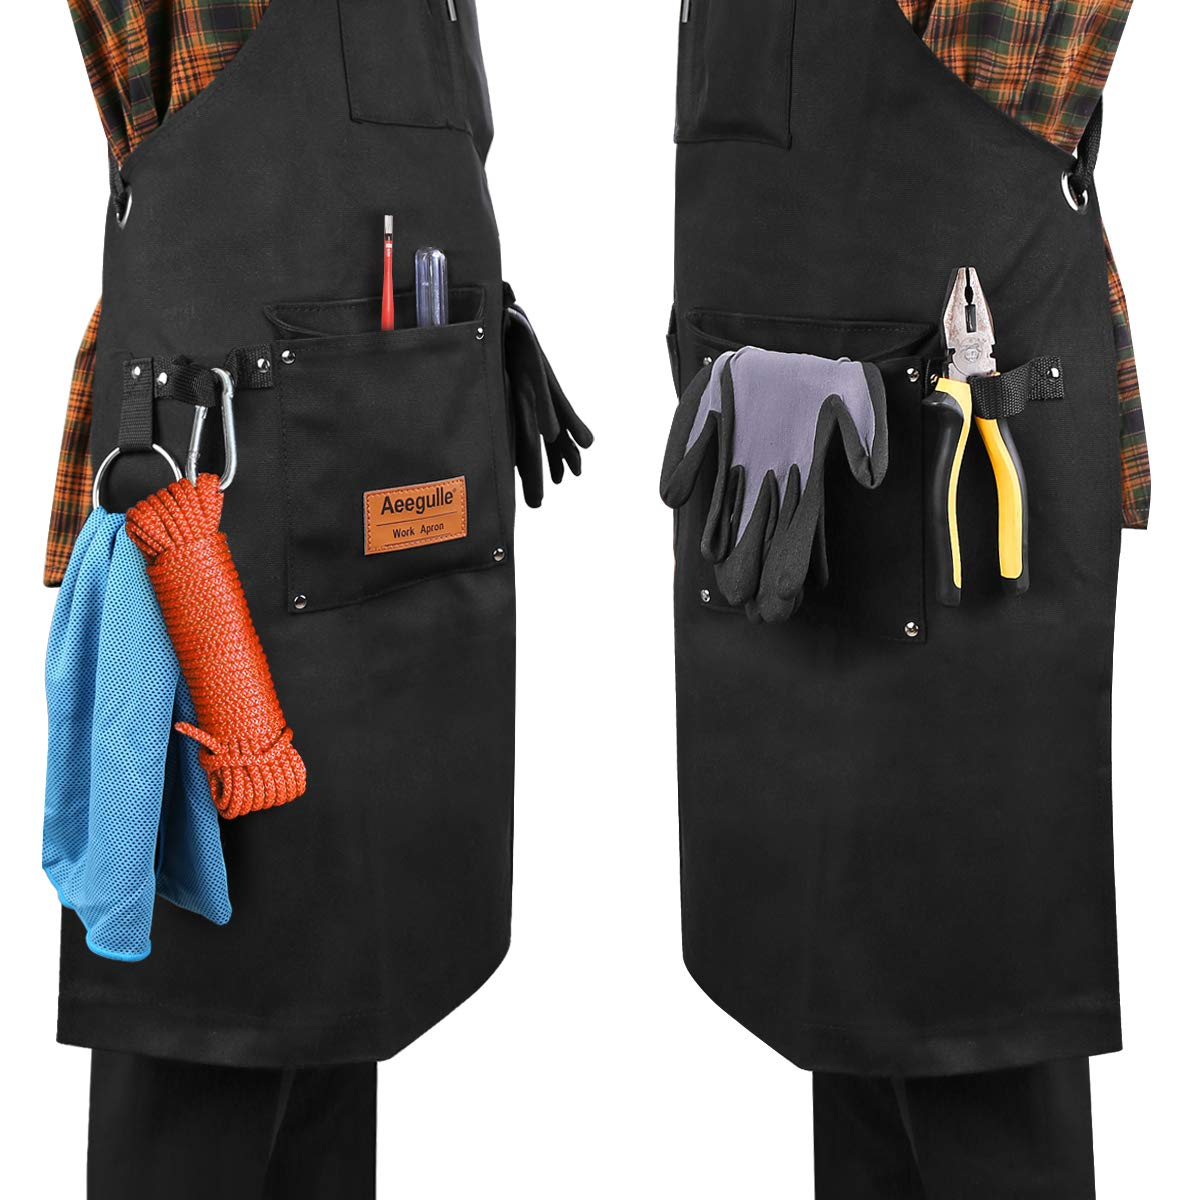 Aeegulle Work Apron, Heavy Duty Waxed Canvas Tool Apron (With work gloves), 6 Pockets, Thick shoulder pad, Quick Release Buckle, Cross-Back Straps Adjustable M to XXL, Apron for Men & Women(black) by Aeegulle (Image #4)